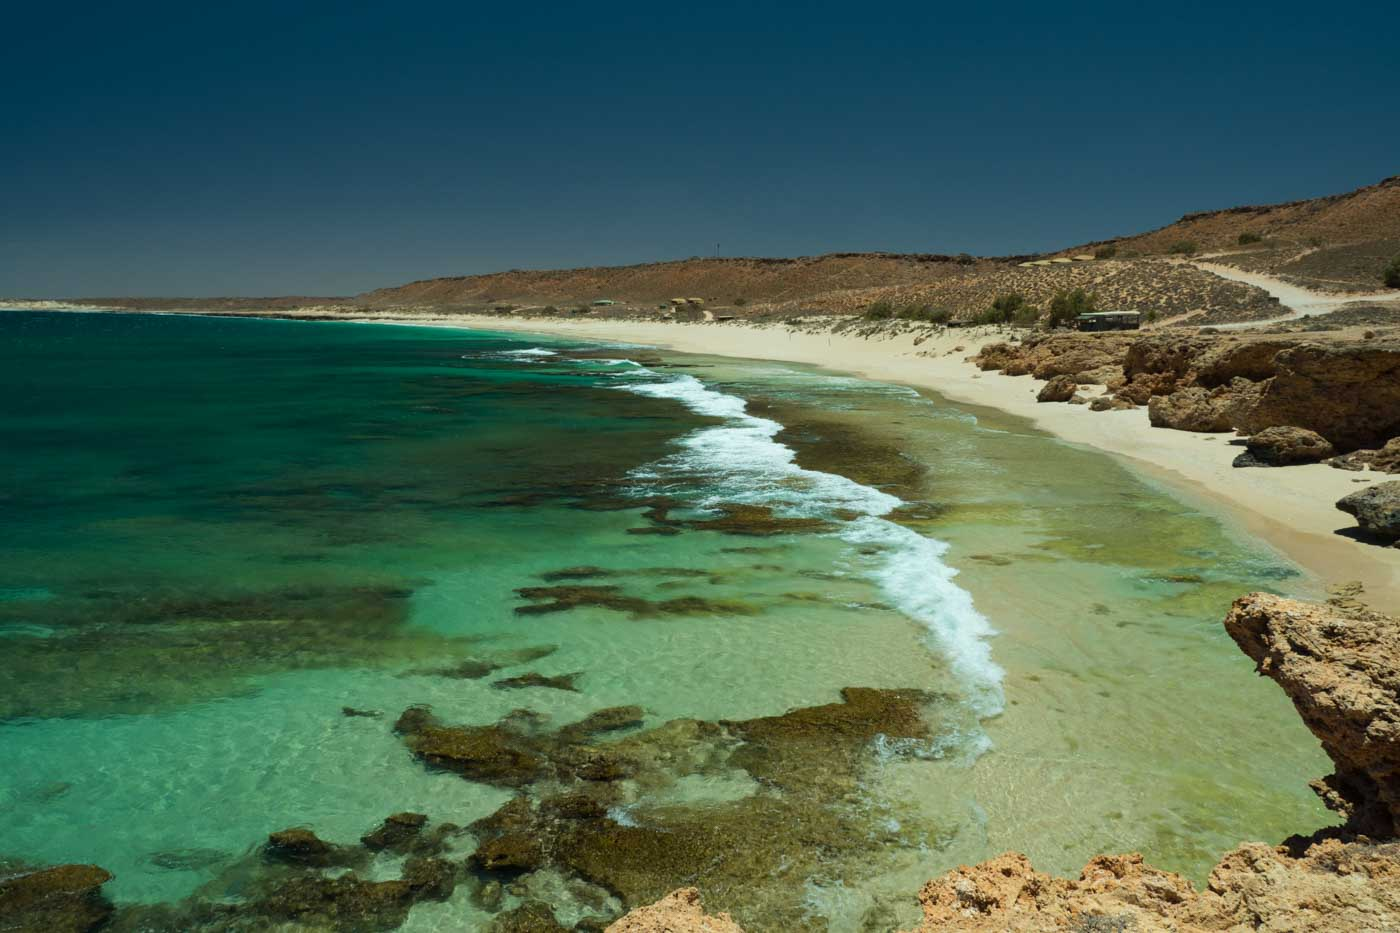 Panorama Red Bluff Surf Spot Western Australia surfing big wave Ningaloo Reef